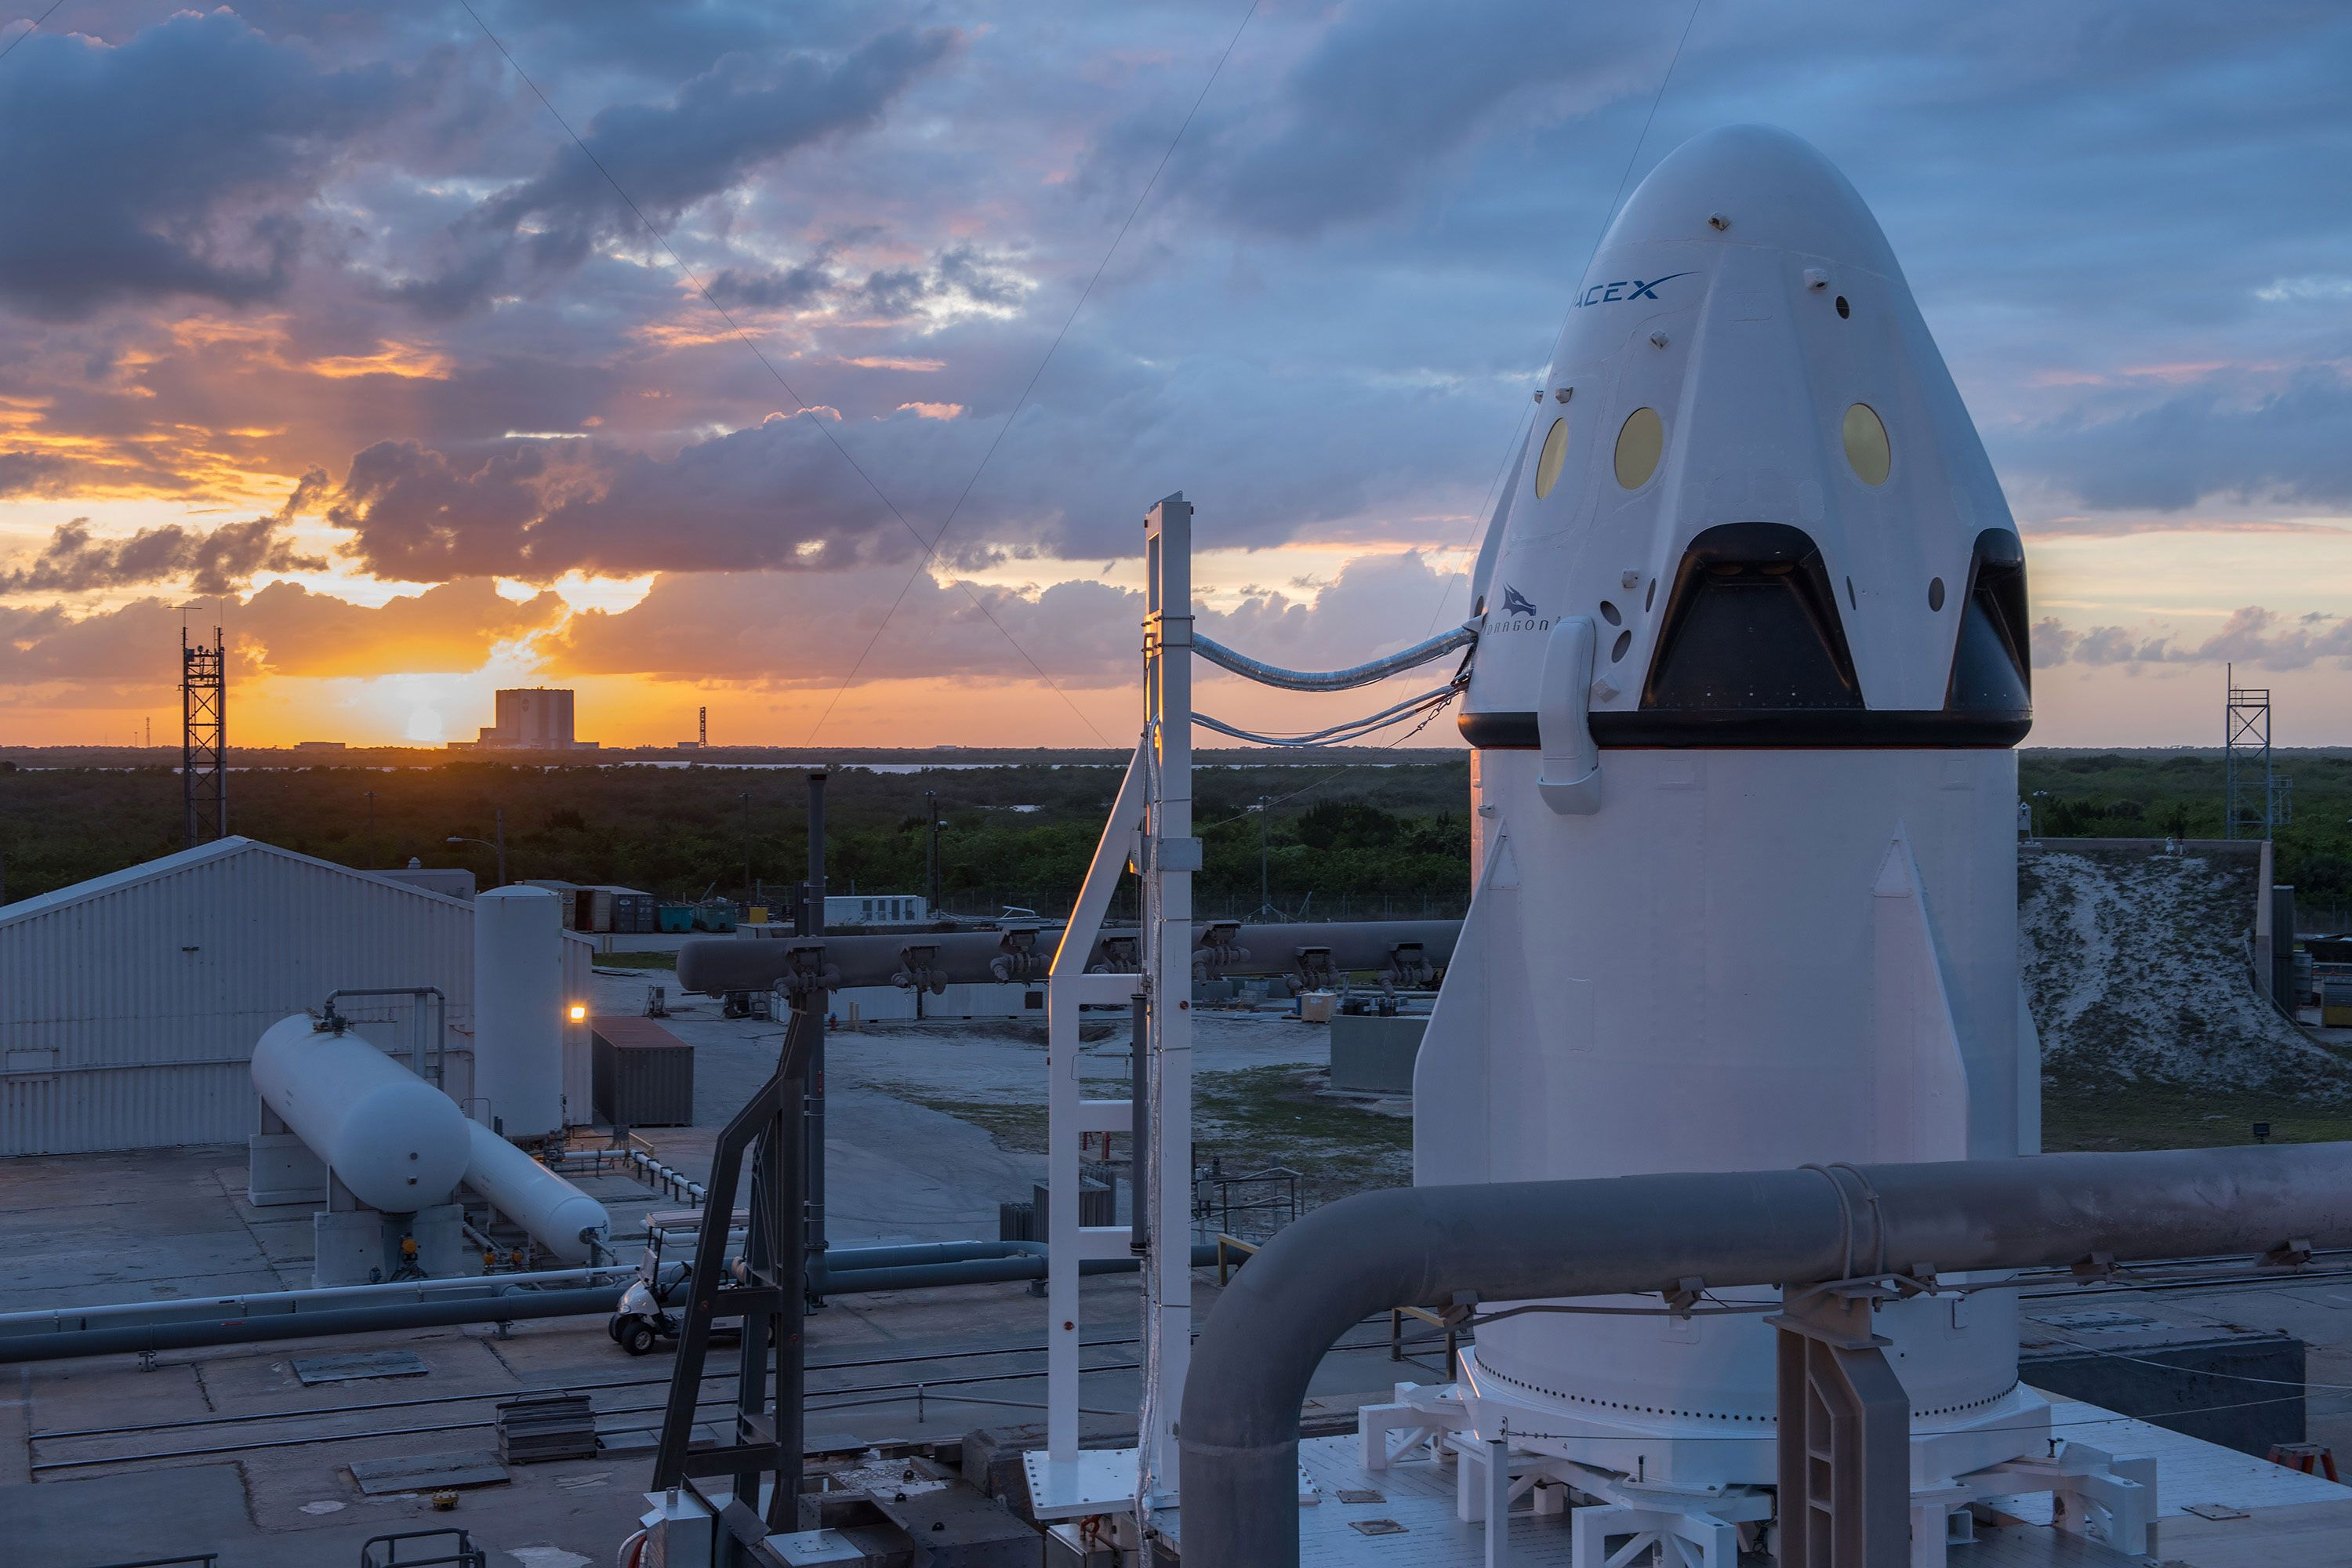 SpaceX 10 years ahead of NASA in race to Mars Spacex